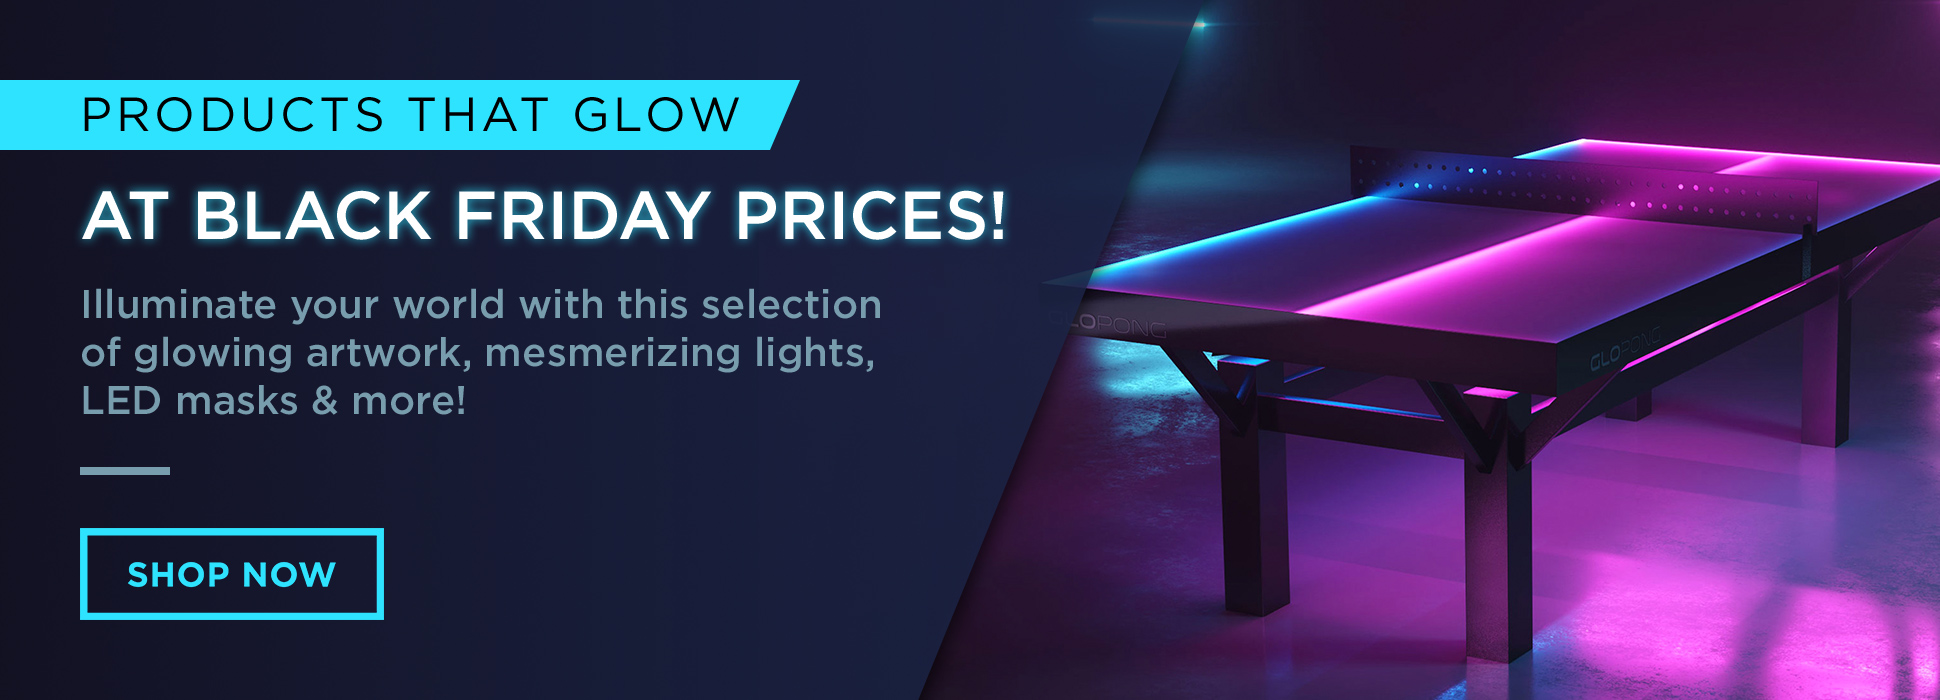 Black Friday Glowing Deals (Banners)